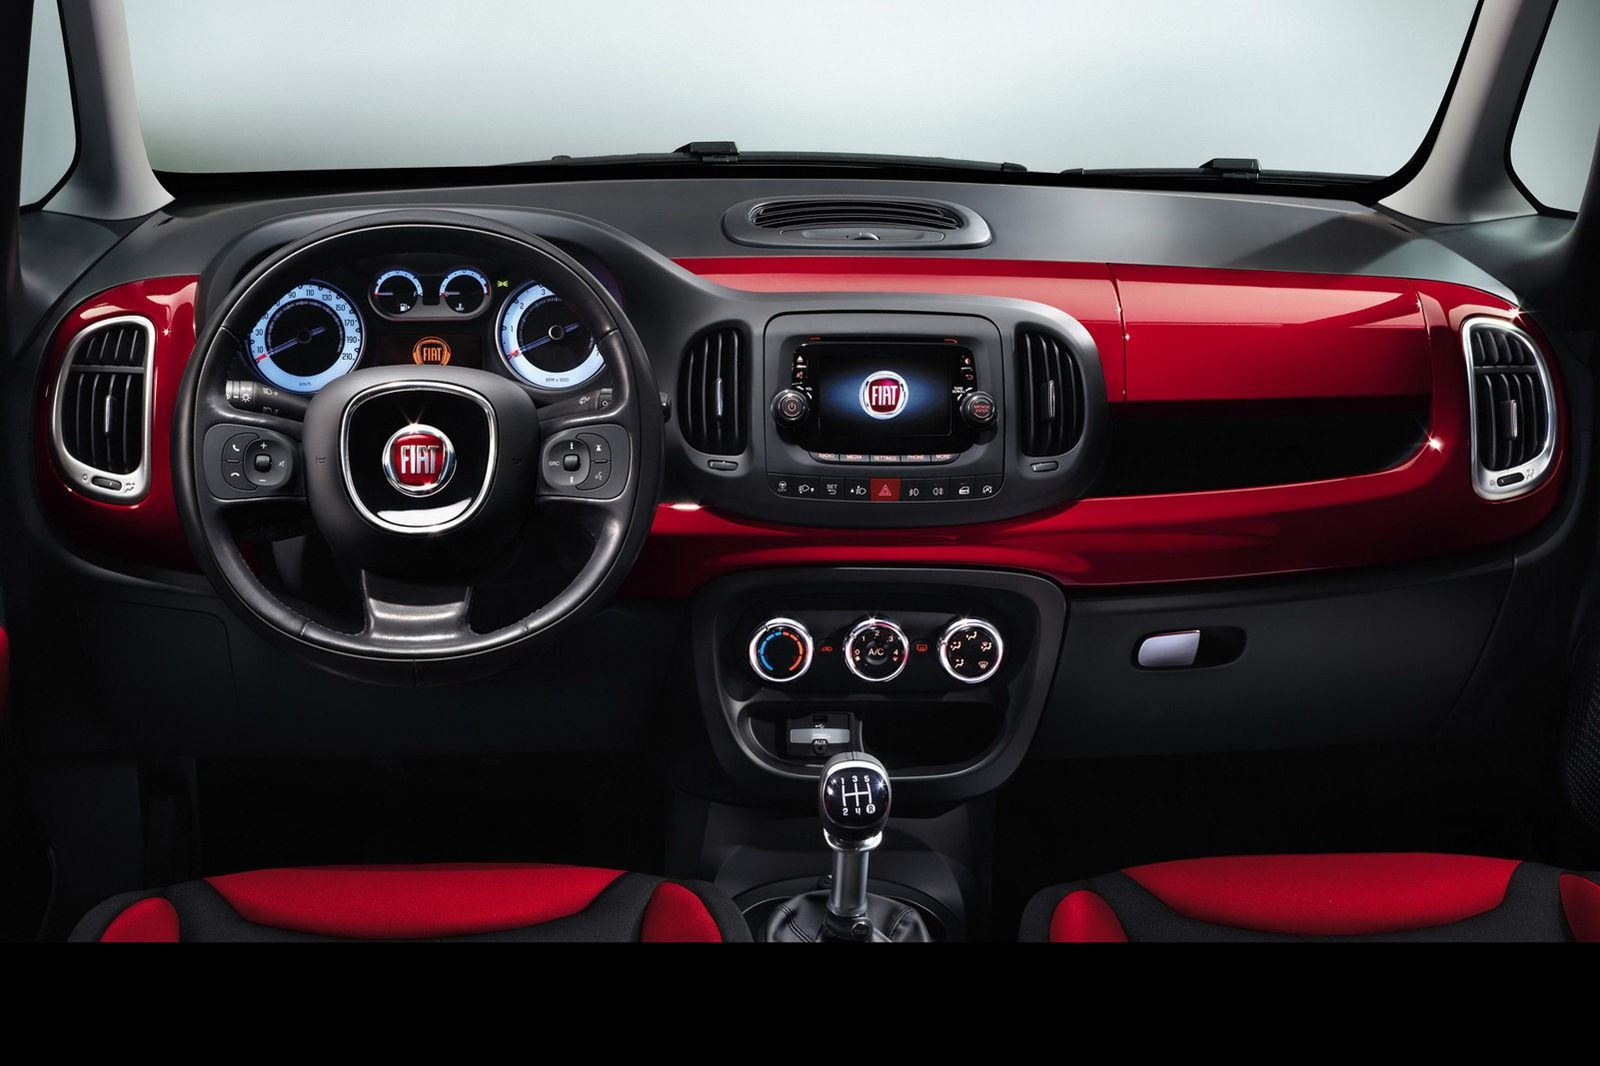 Interior View Of The 2014 Fiat 500l With Images Fiat 500l